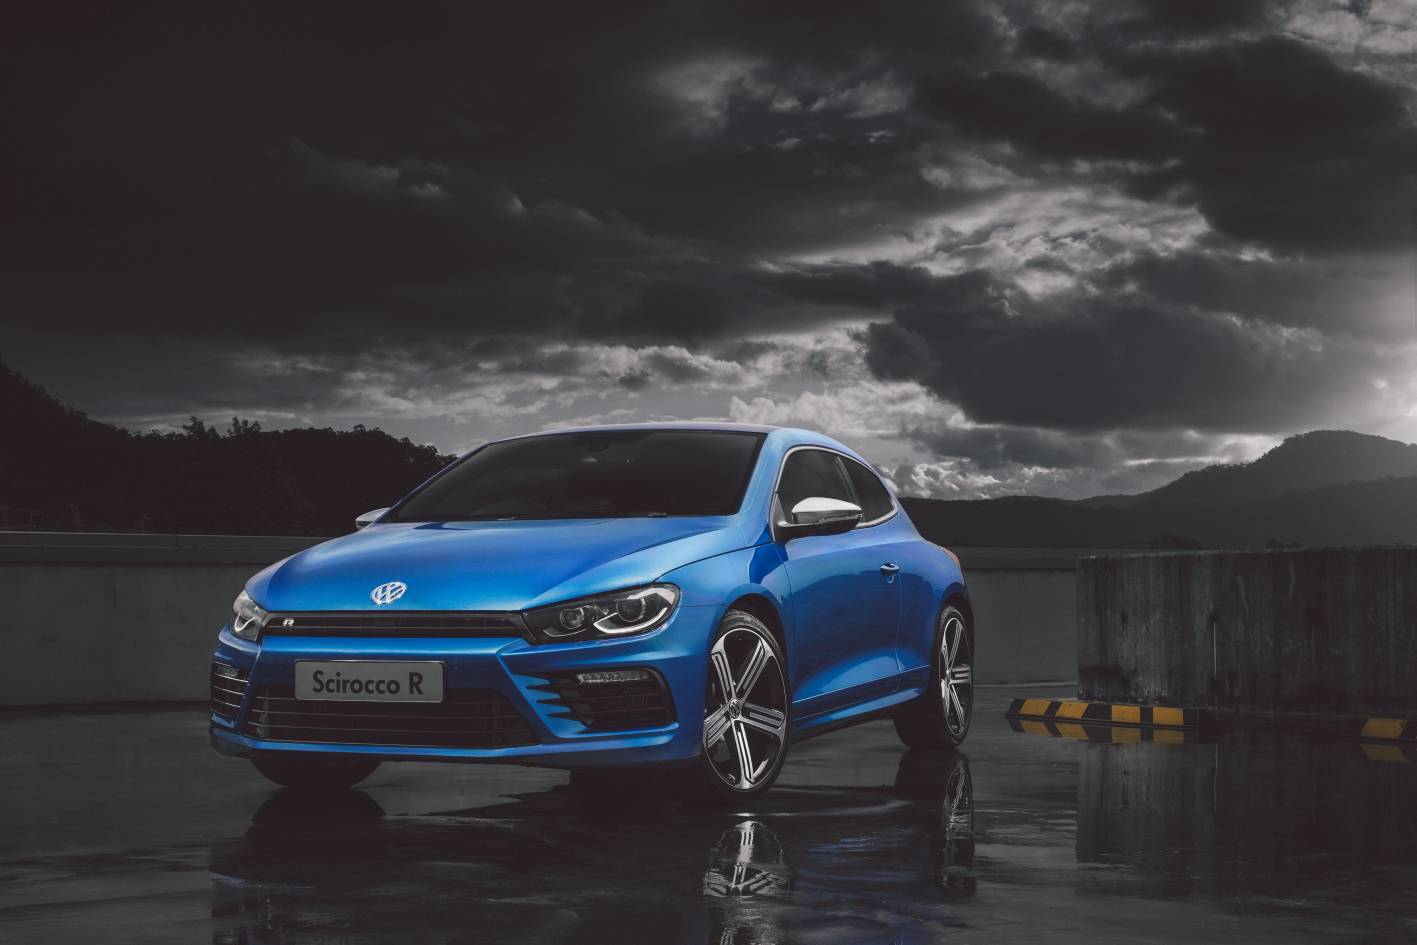 Volkswagen Cars - News: 2015 Scirocco R pricing and specifications